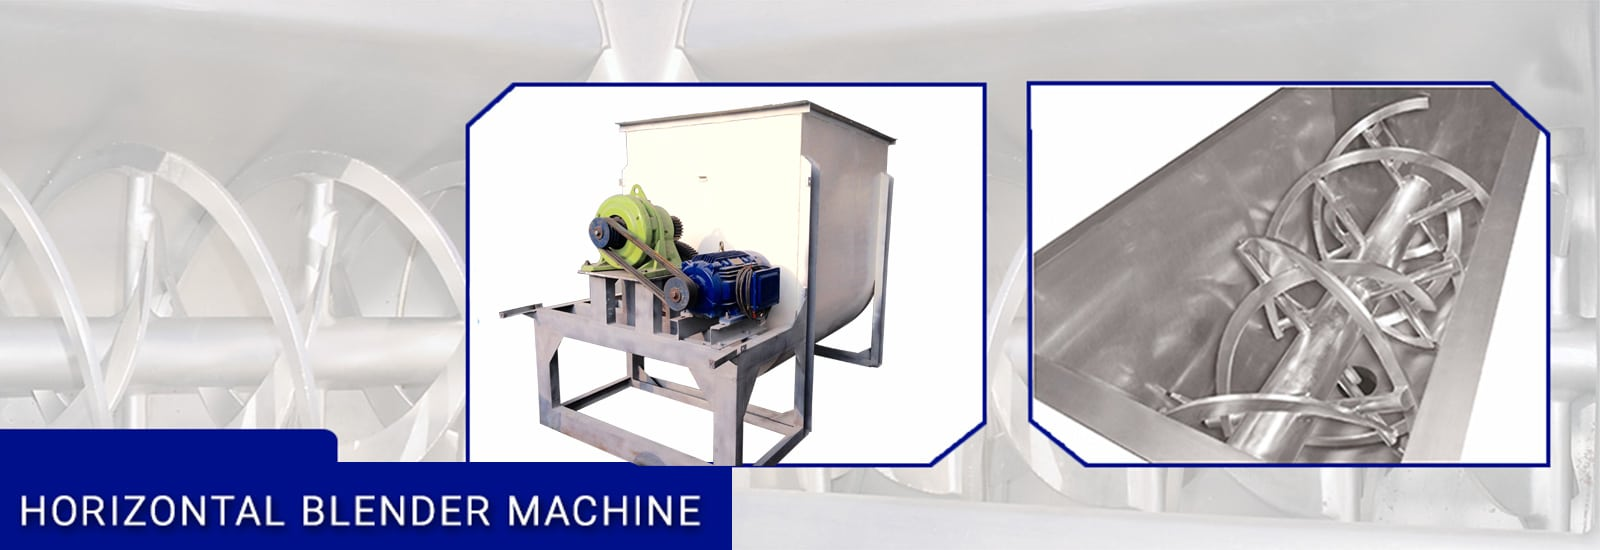 horizontal blender machine manufacturer in maharashtra